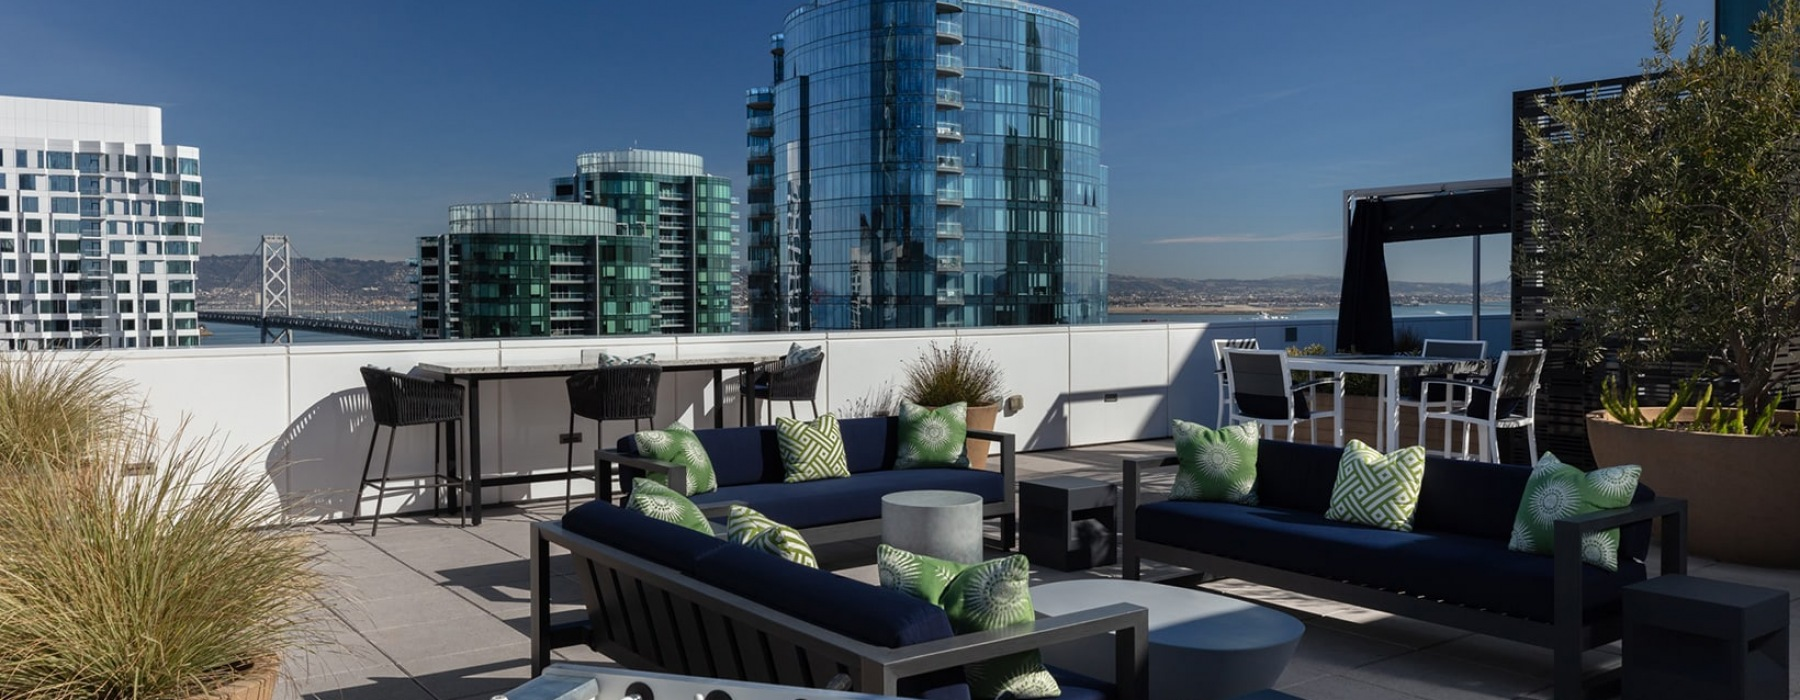 spacious lounge on the seventh floor with views of the city